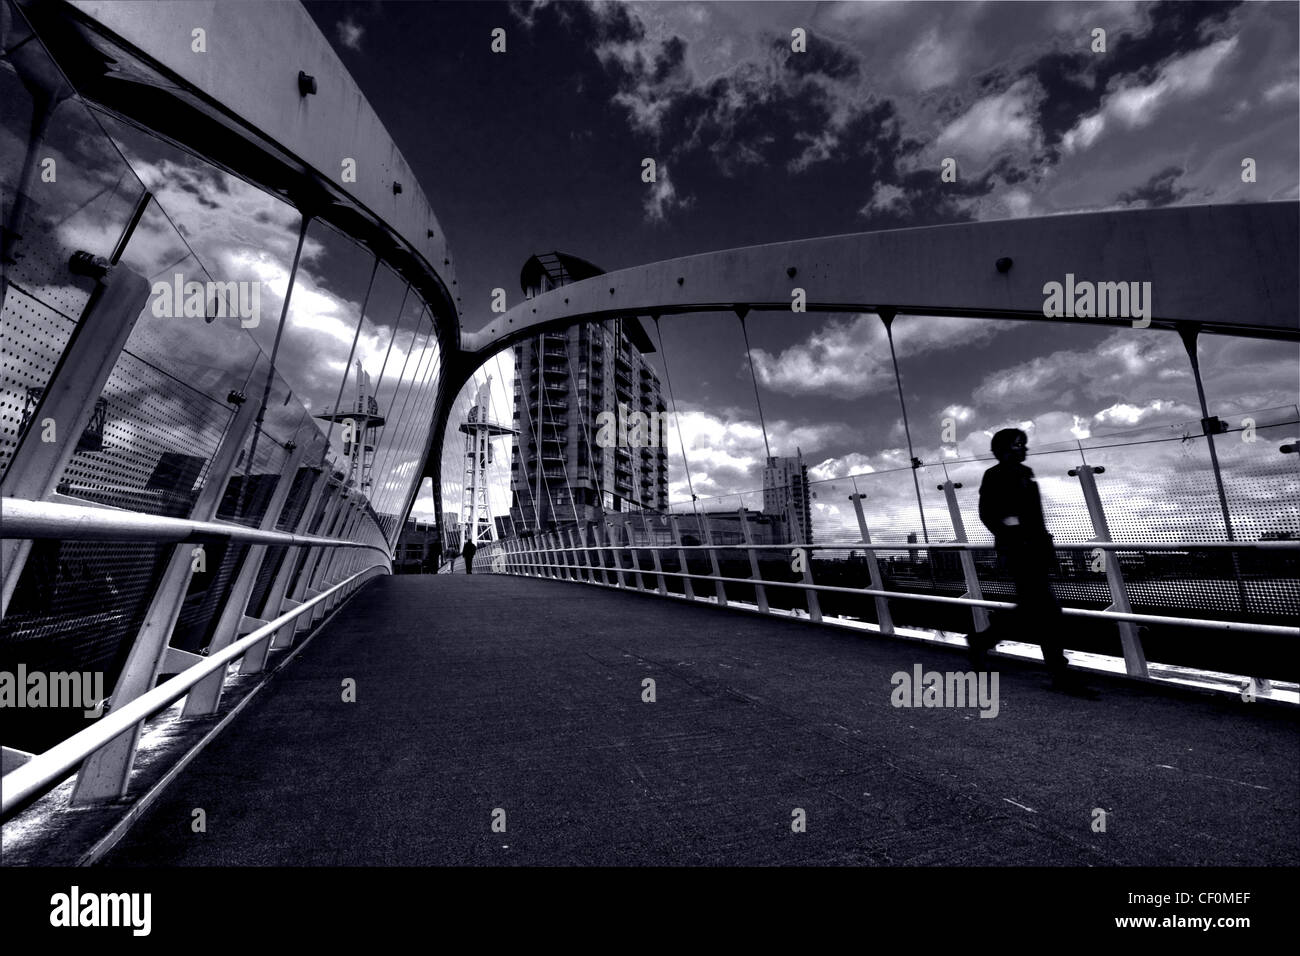 Runner crossing The Salford Quays Lifting Bridge, Media City UK, Manchester England - Stock Image